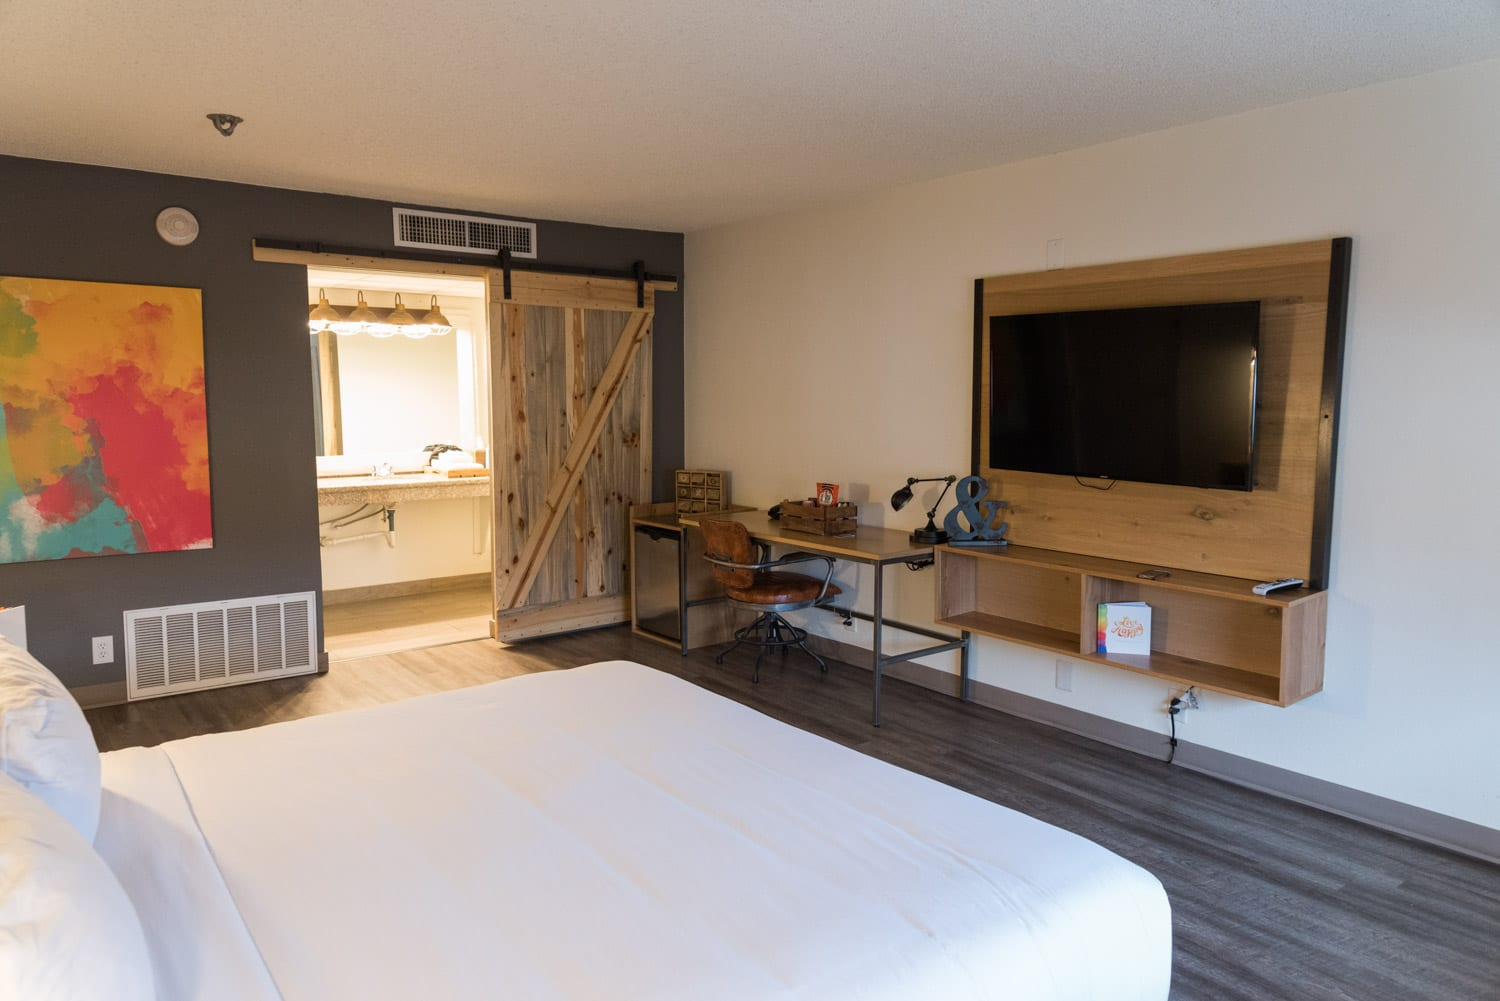 image of hotel room at SCP Hotel